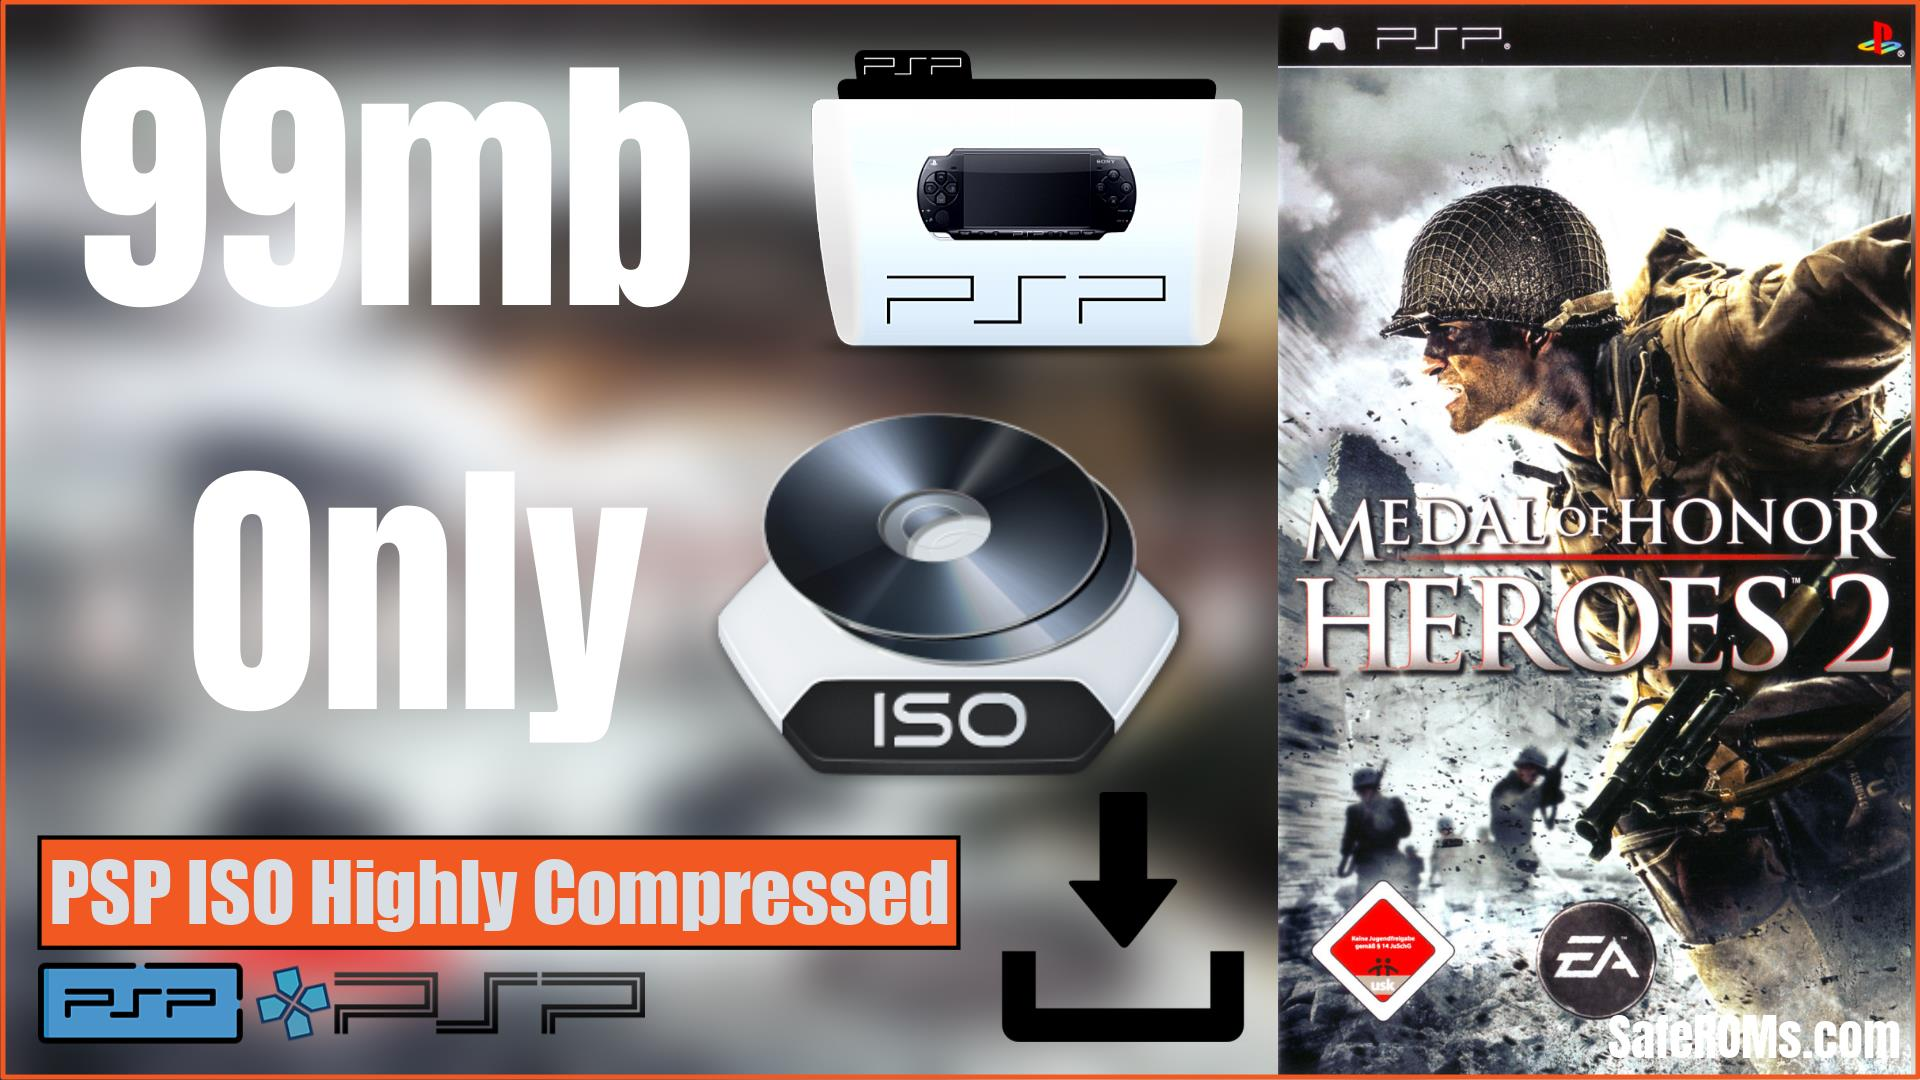 Medal of Honor Heroes 2 PSP ISO Highly Compressed Download